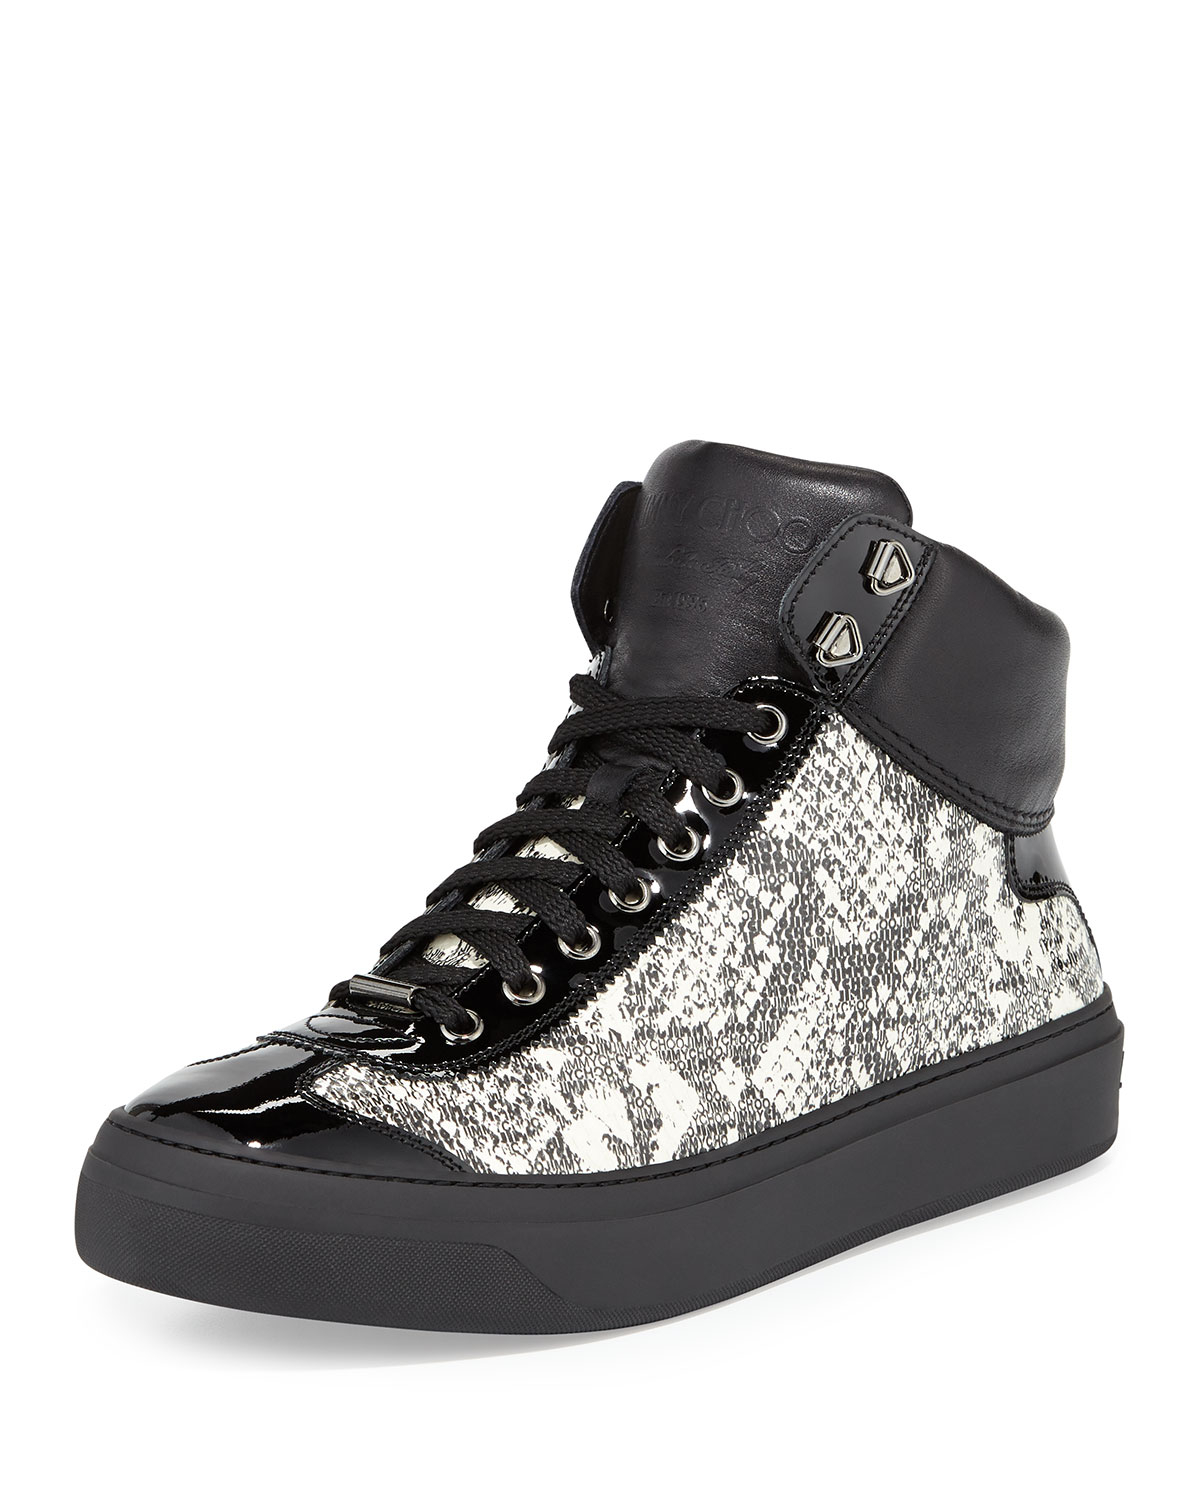 c90ec5136401 coupon code for black crocodile high top leather sneakers belgravia jimmy  choo f4c24 20436  reduced jimmy choo mens sneakers velcro 9c46a d7140